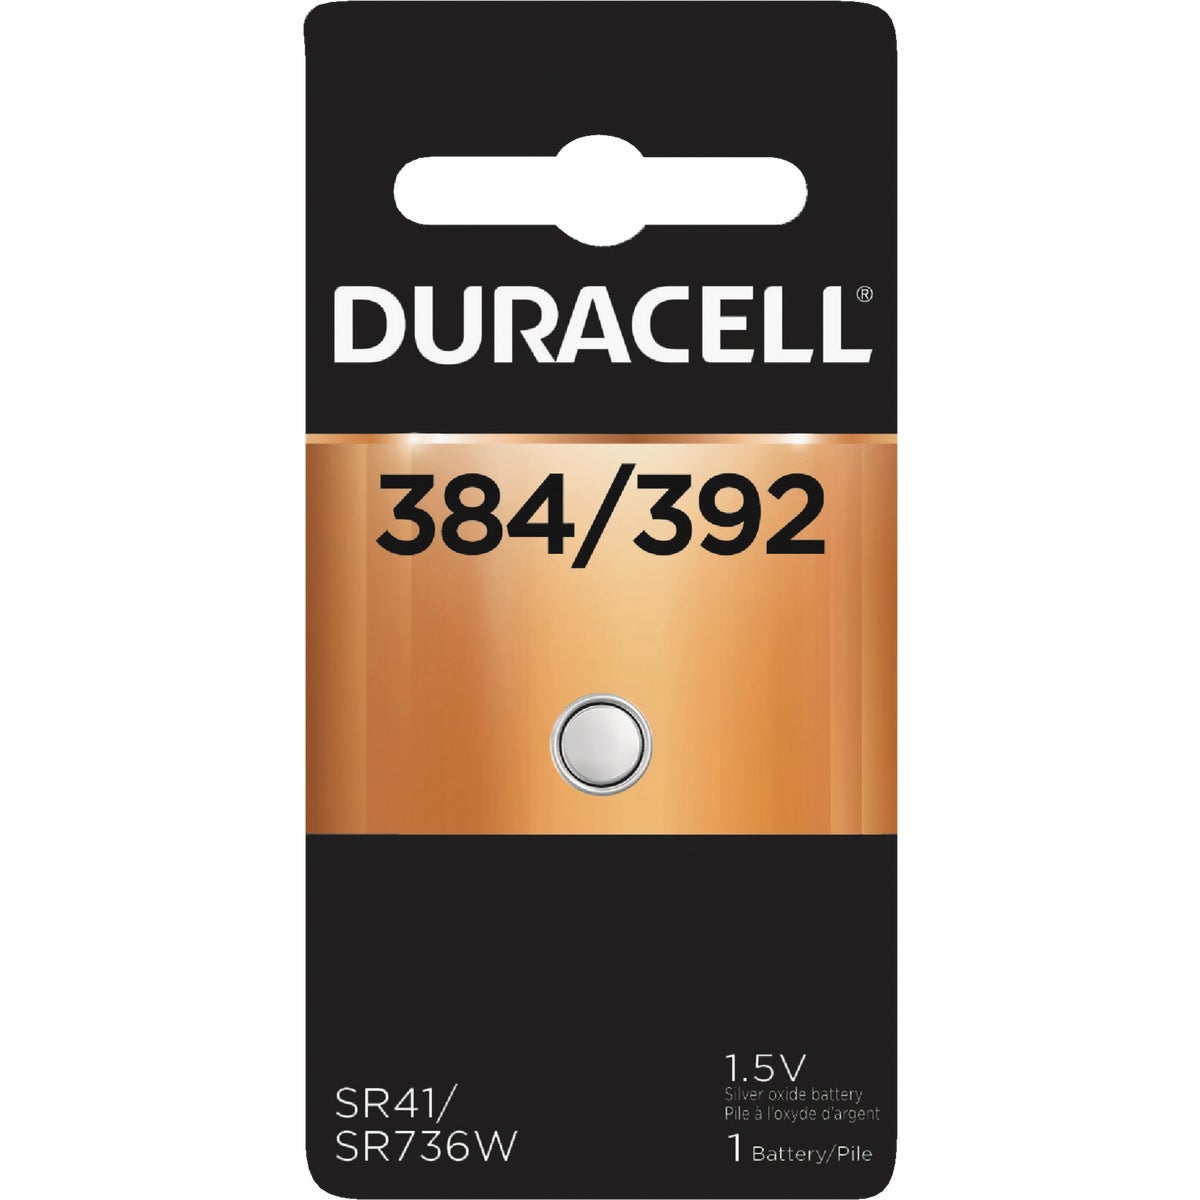 D384/392 1.5V WA BATTERY - 42287 by P & G  Duracell